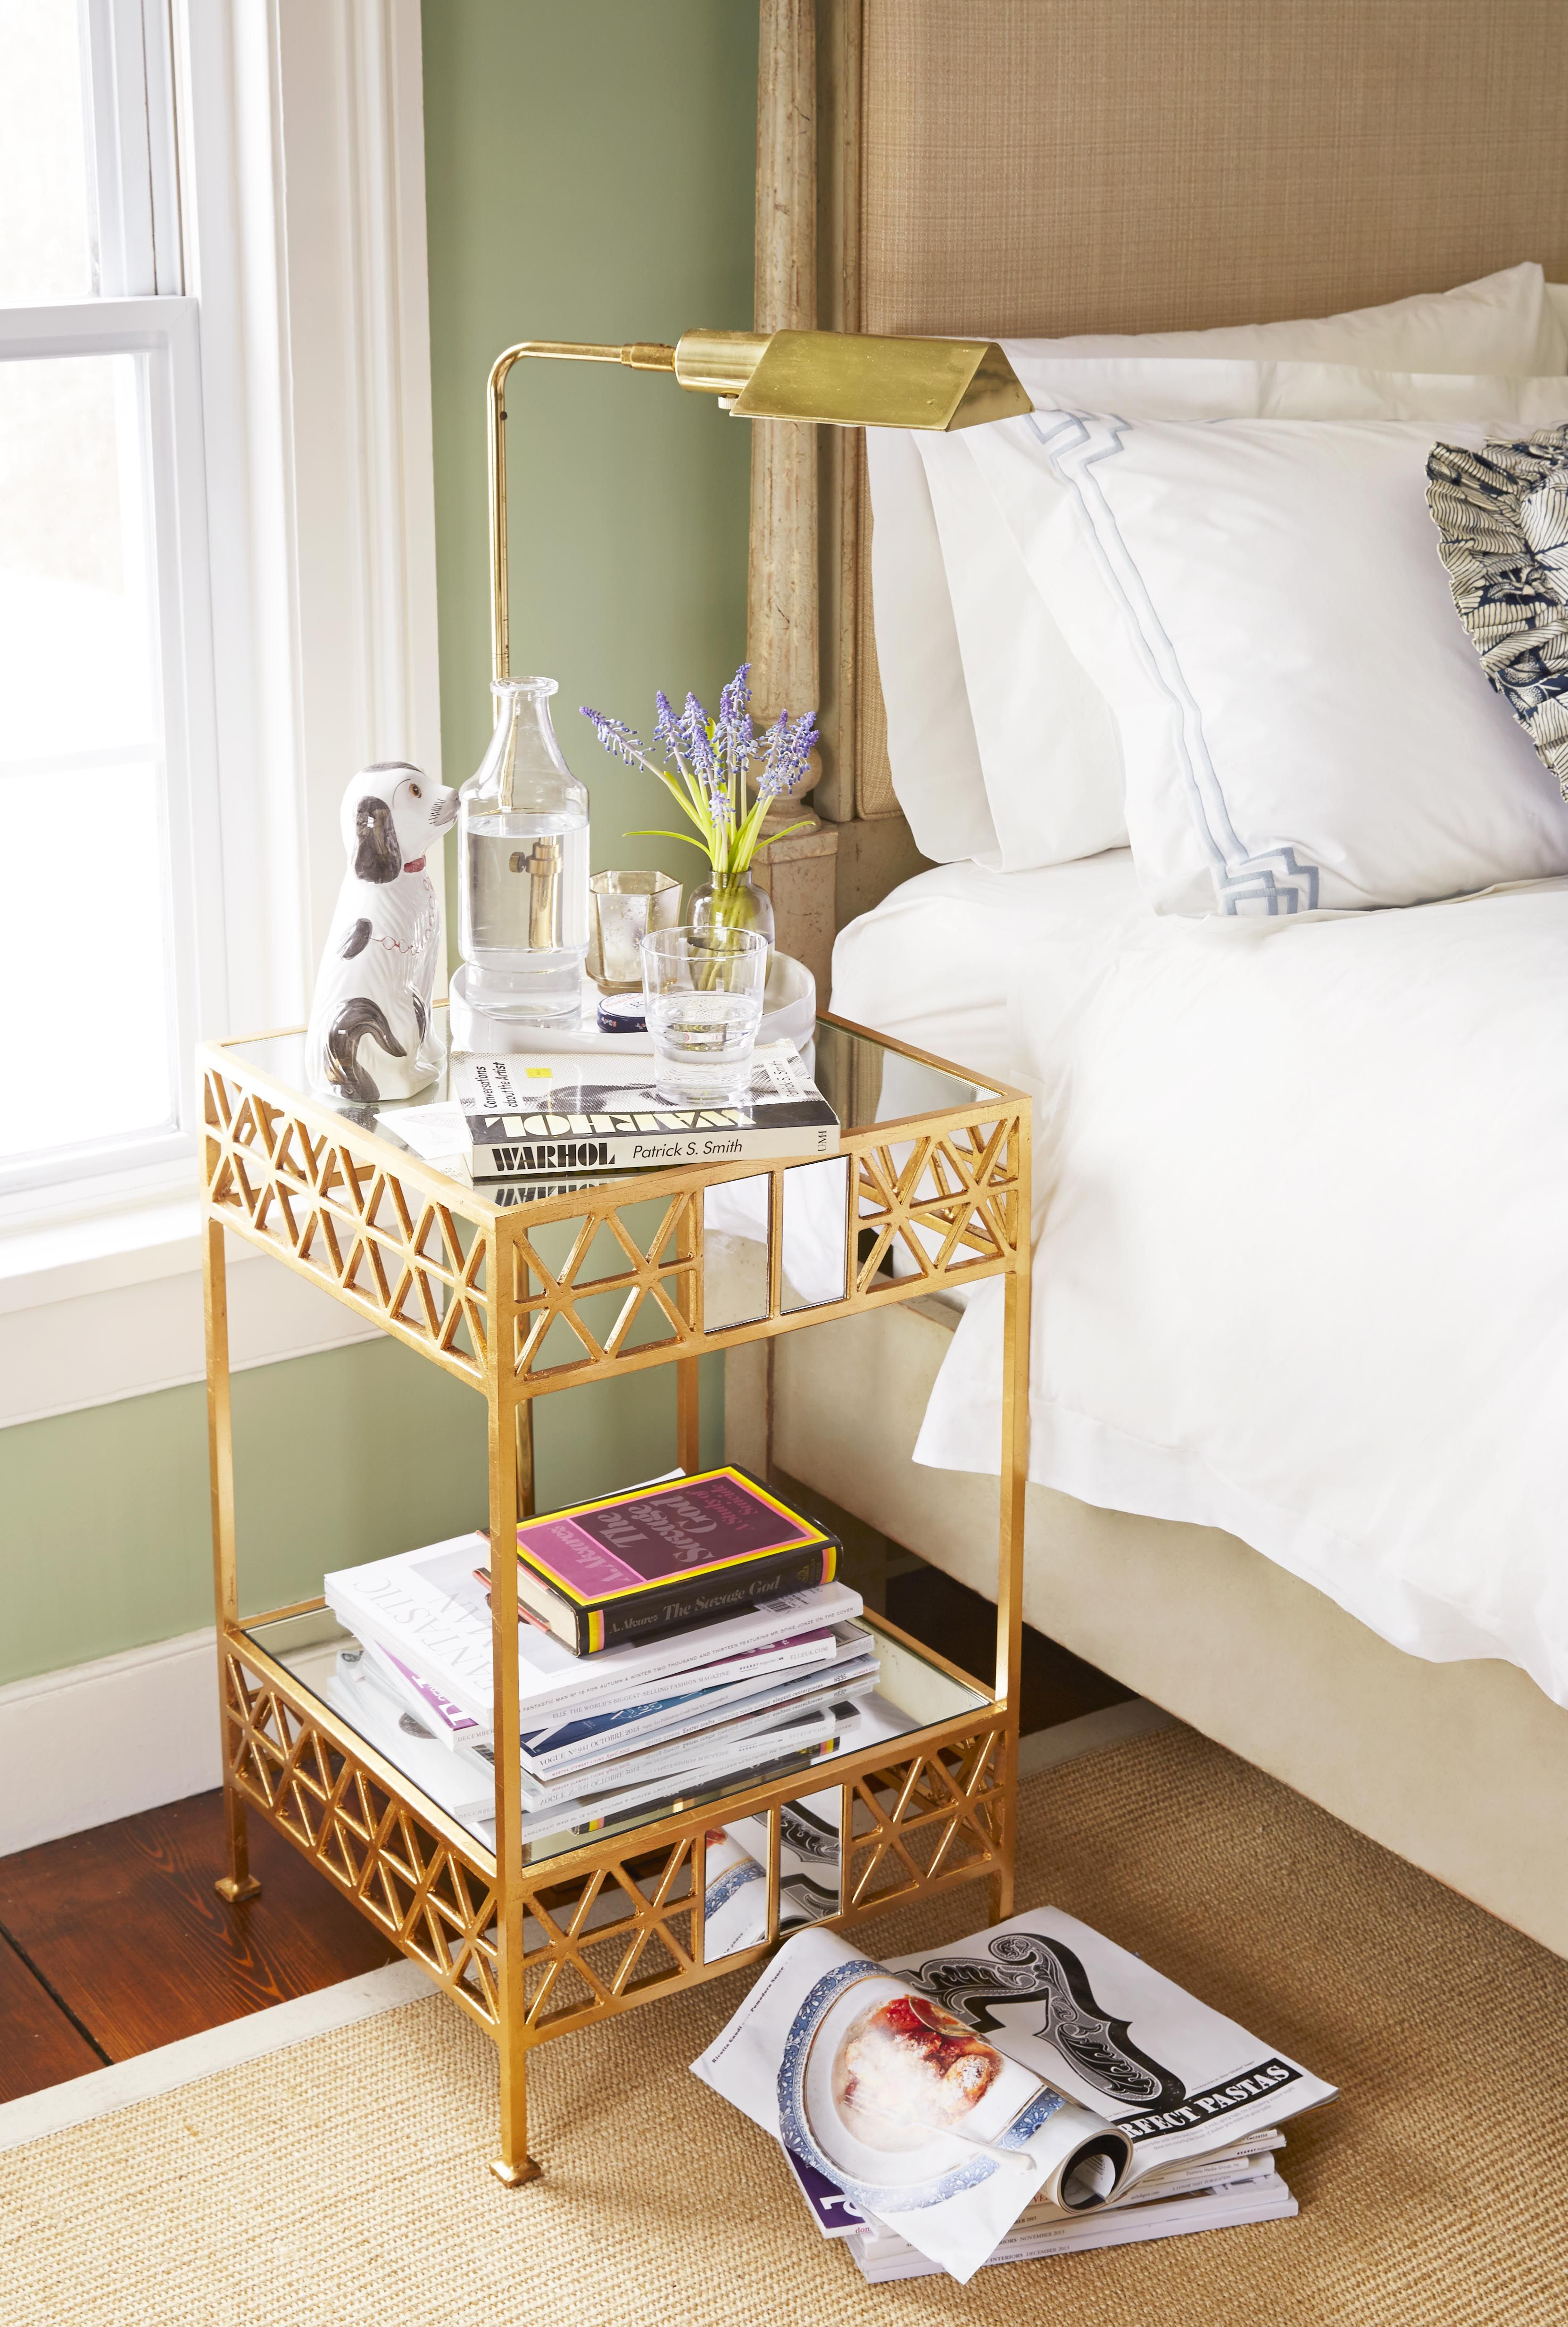 Creative Bedside Tables: A Bedside Table Is The Perfect Place For Sentimental